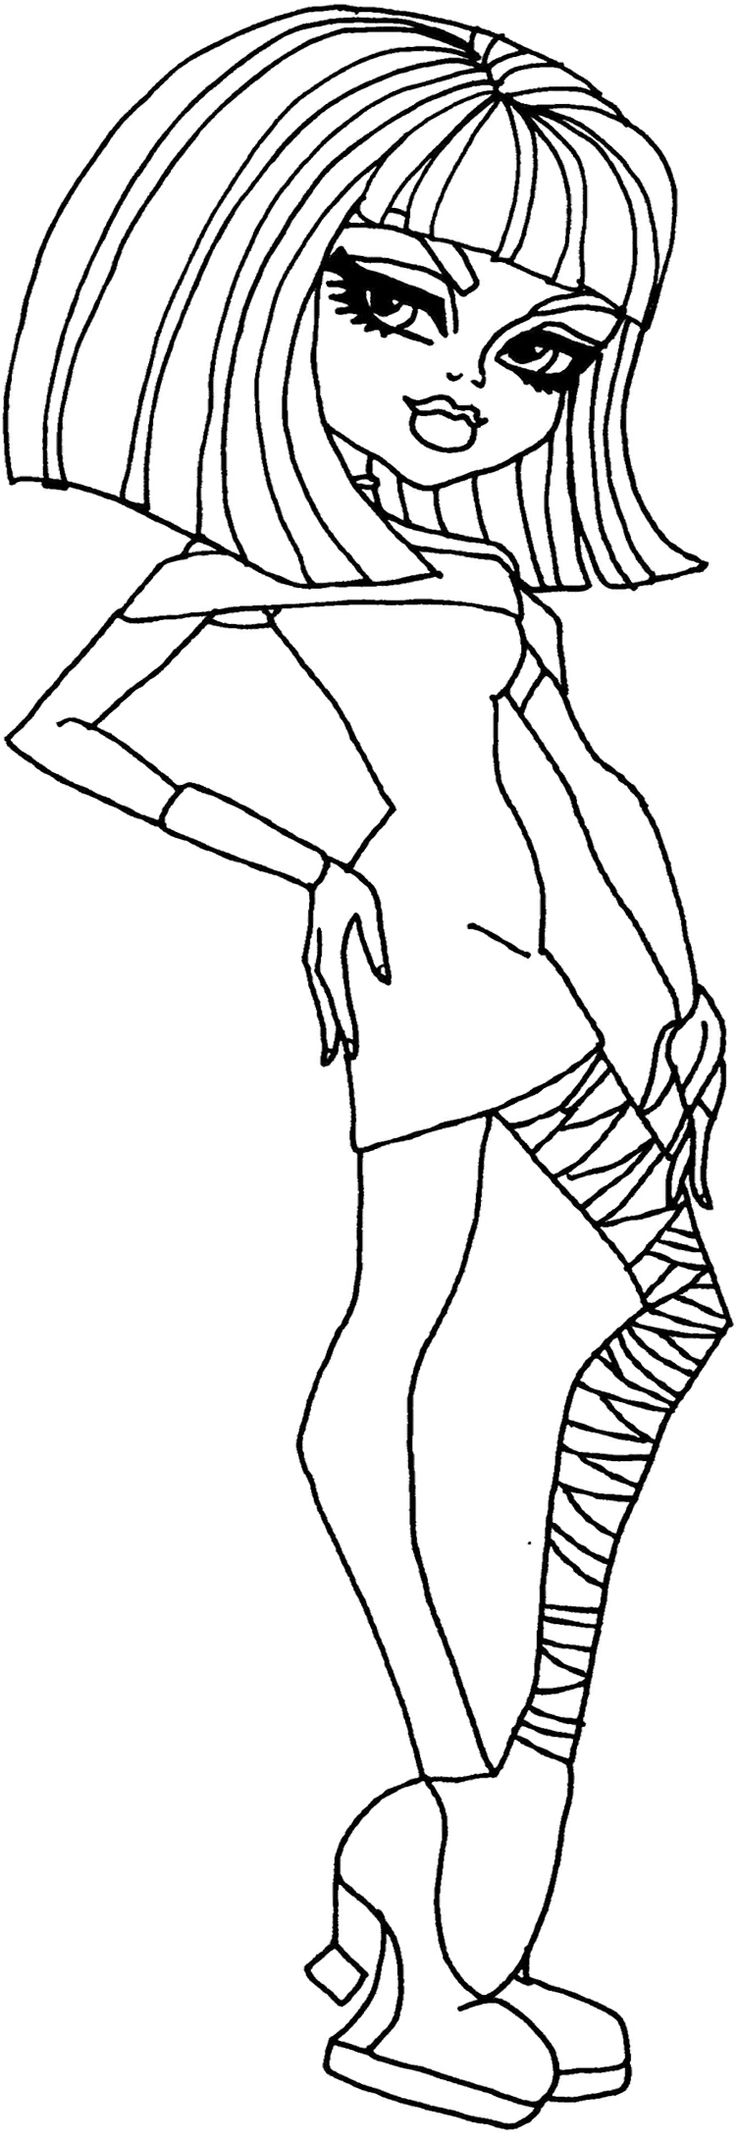 Monster High Cleo De Nile Coloring Pages - Eskayalitim